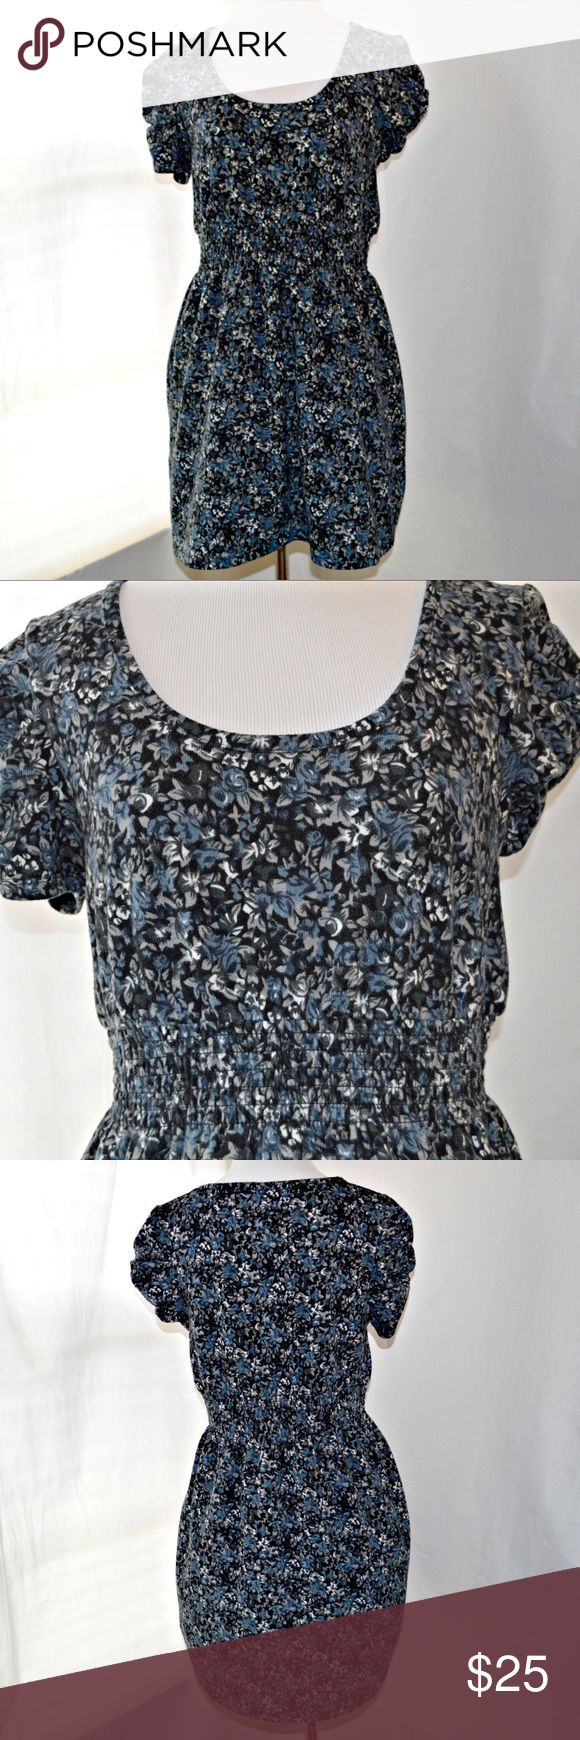 "Manguun Black and Blue Floral Dress Black and blue floral printed dress by Manguun. Made of a sweater-like material. Has an elastic waistband. In excellent condition!  | Measurements |  Size: Medium  Length: 31"" Bust: 33""  